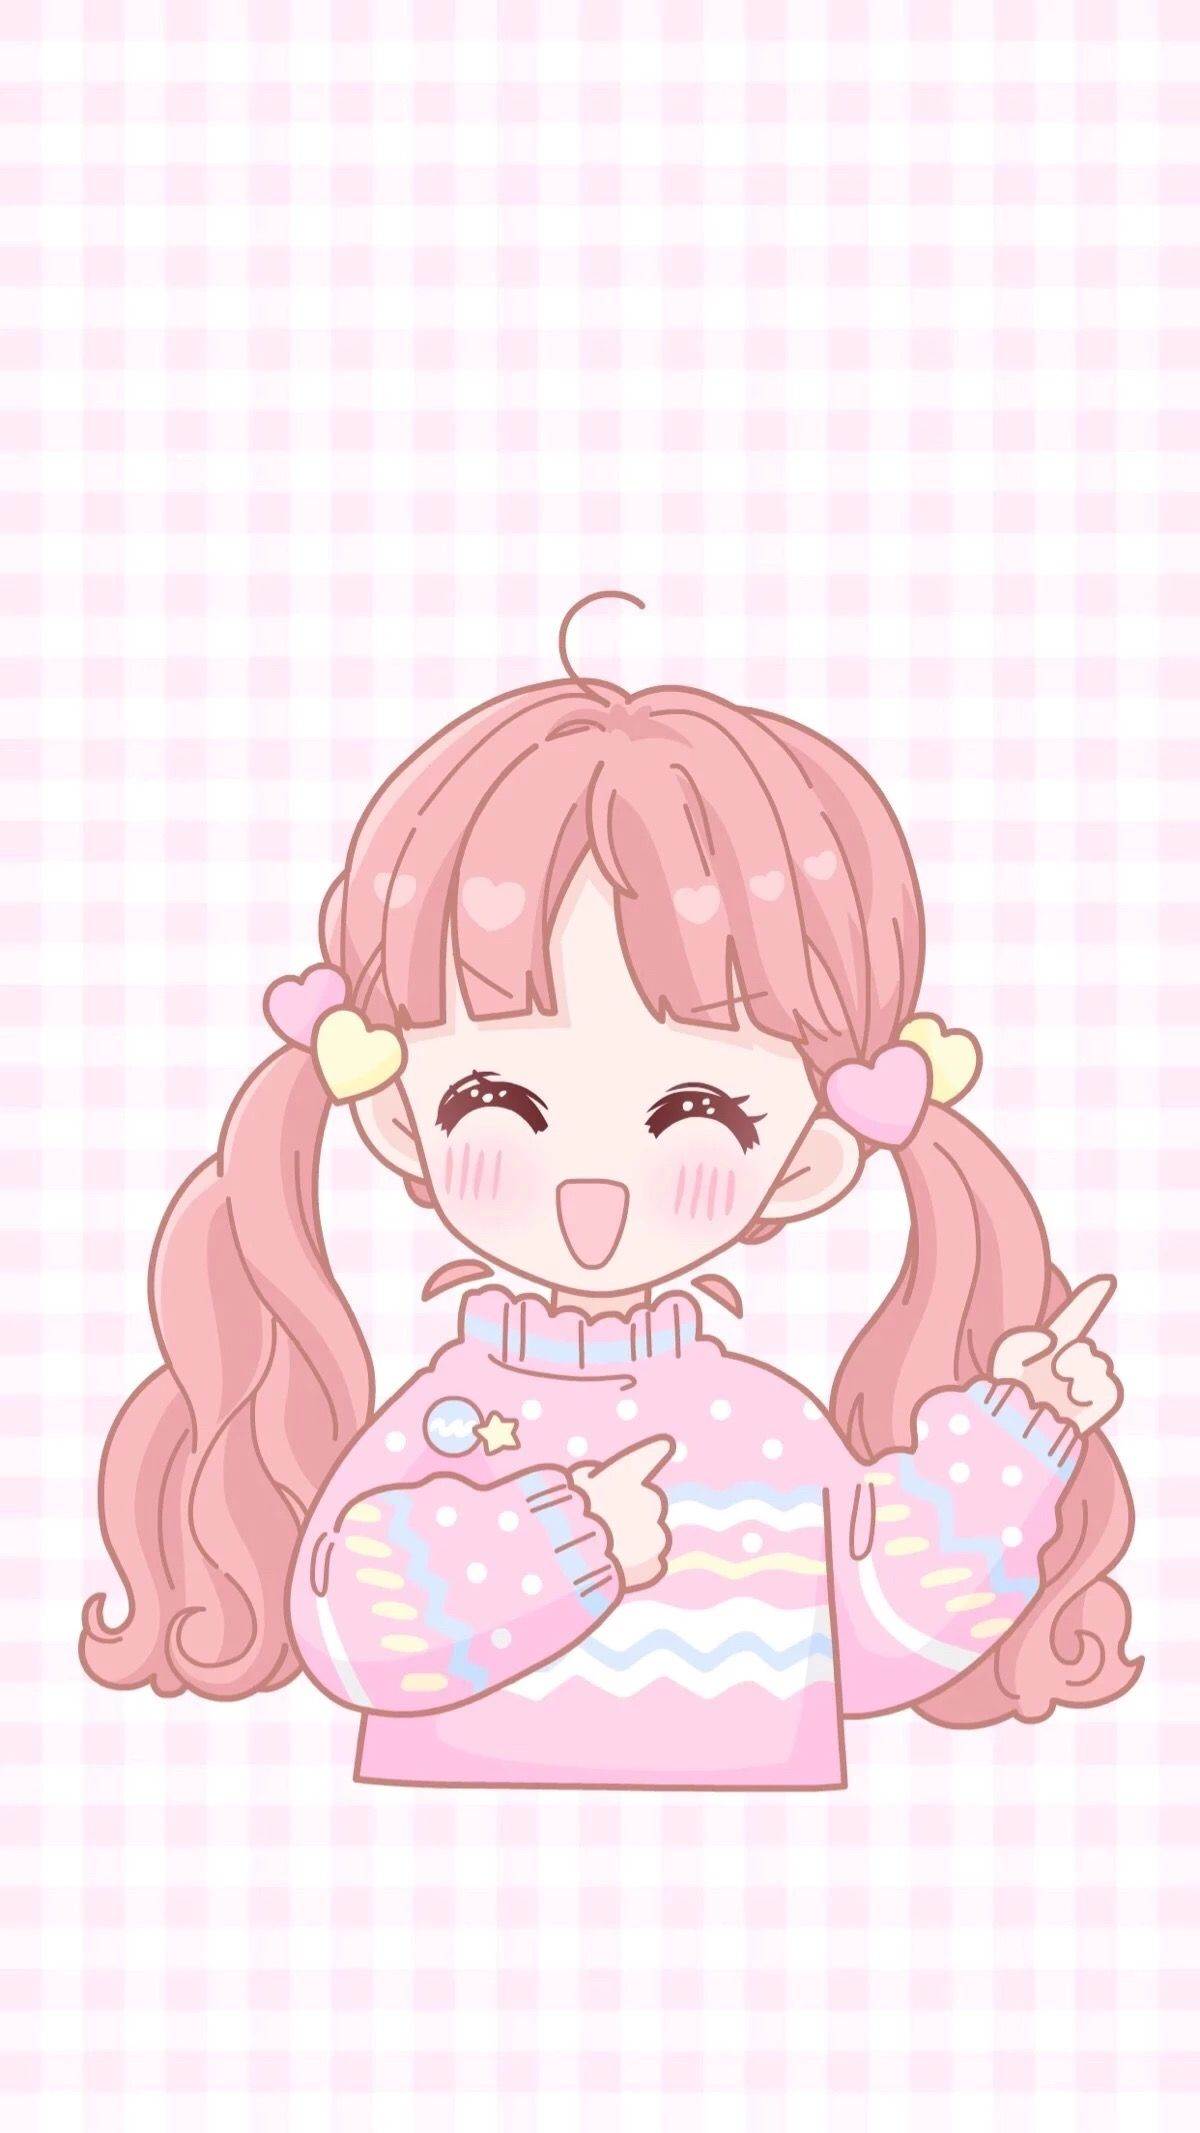 Pin By Daria Williams On Backgrounds Pinterest Kawaii Wallpaper